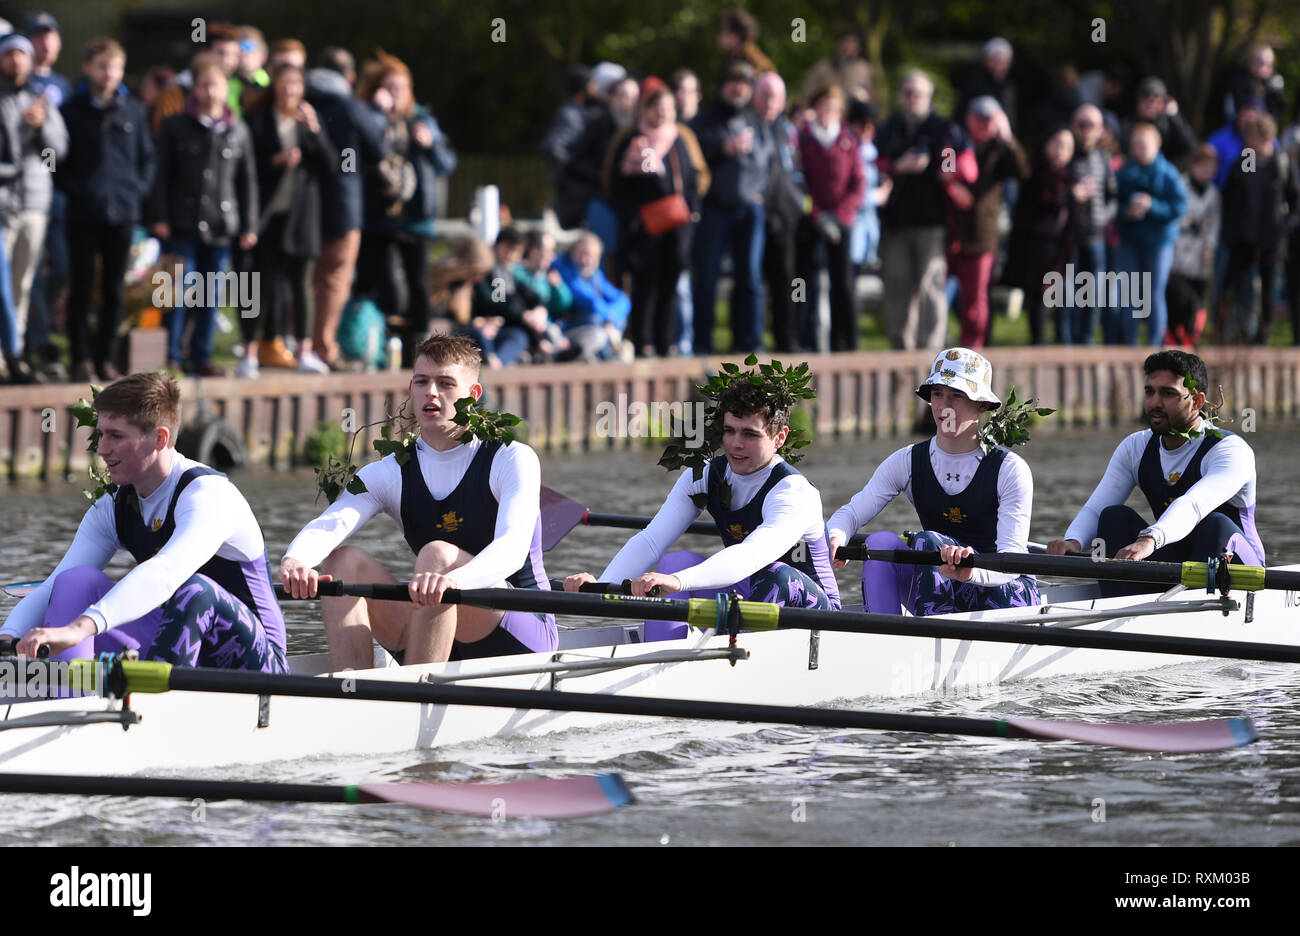 A crew from Magdelene College row home with greenery in their hair to signify a successful bump during the final day of the Cambridge University Lent Bumps along the River Cam in Cambridge. - Stock Image